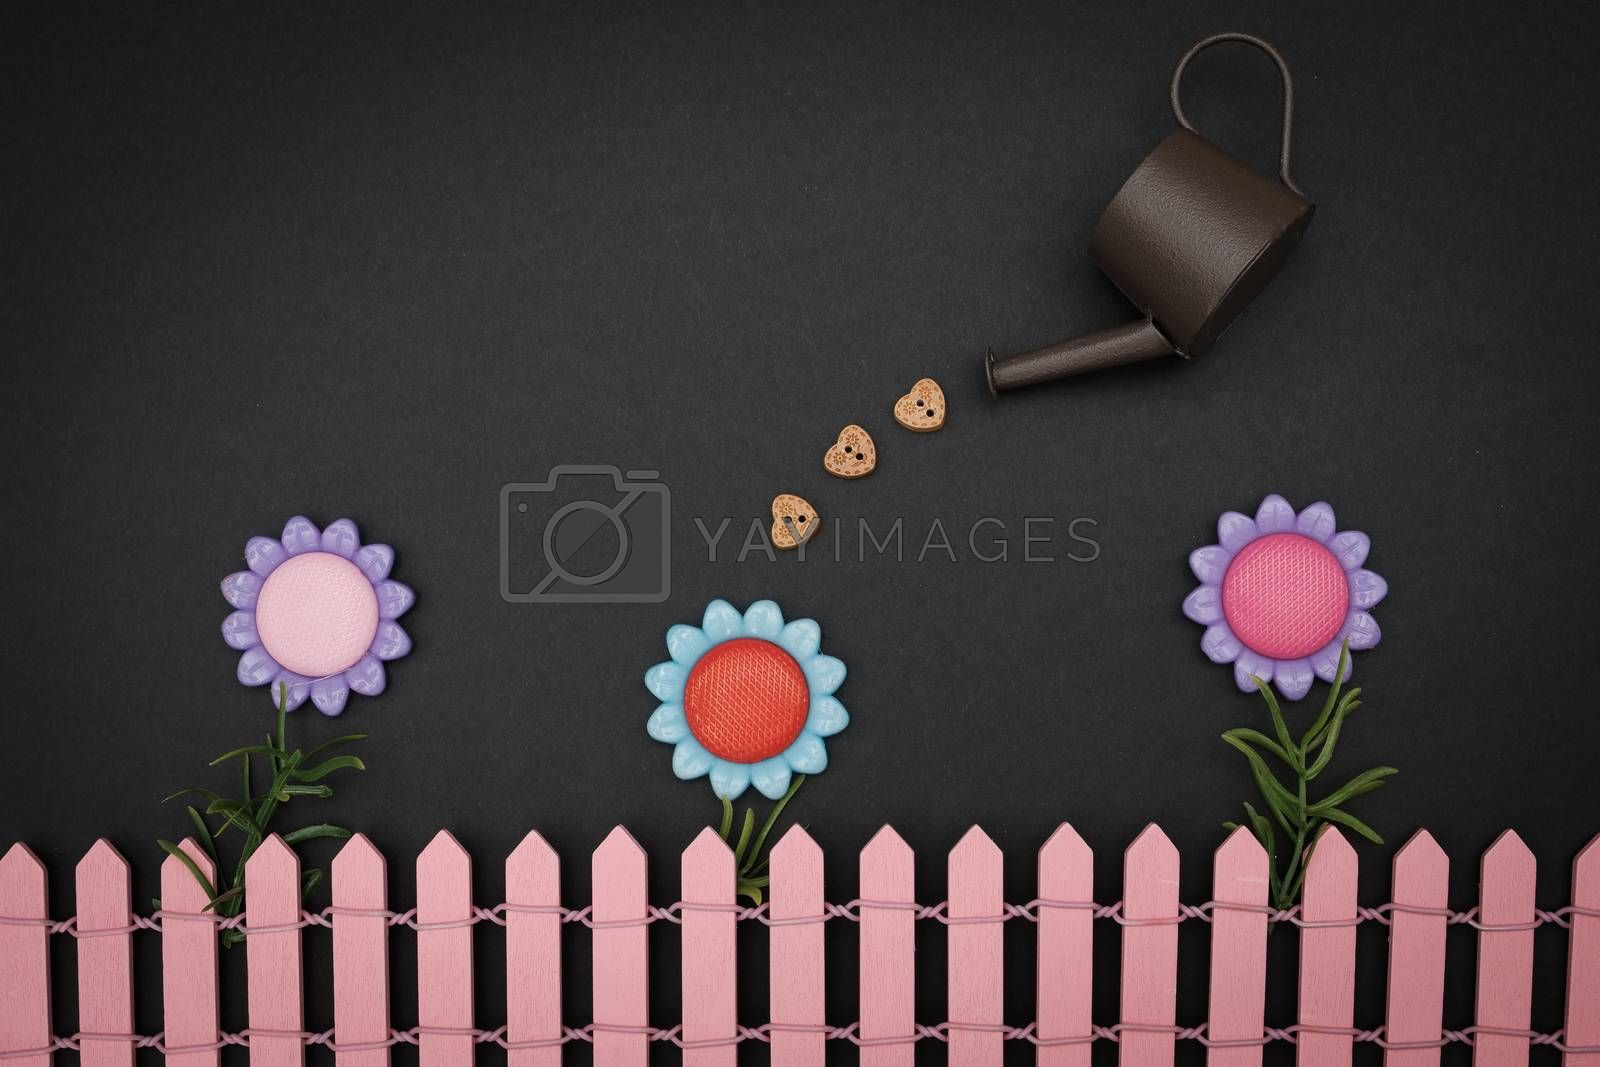 Watering a flower on black background, valentine concept. Vintage tone.